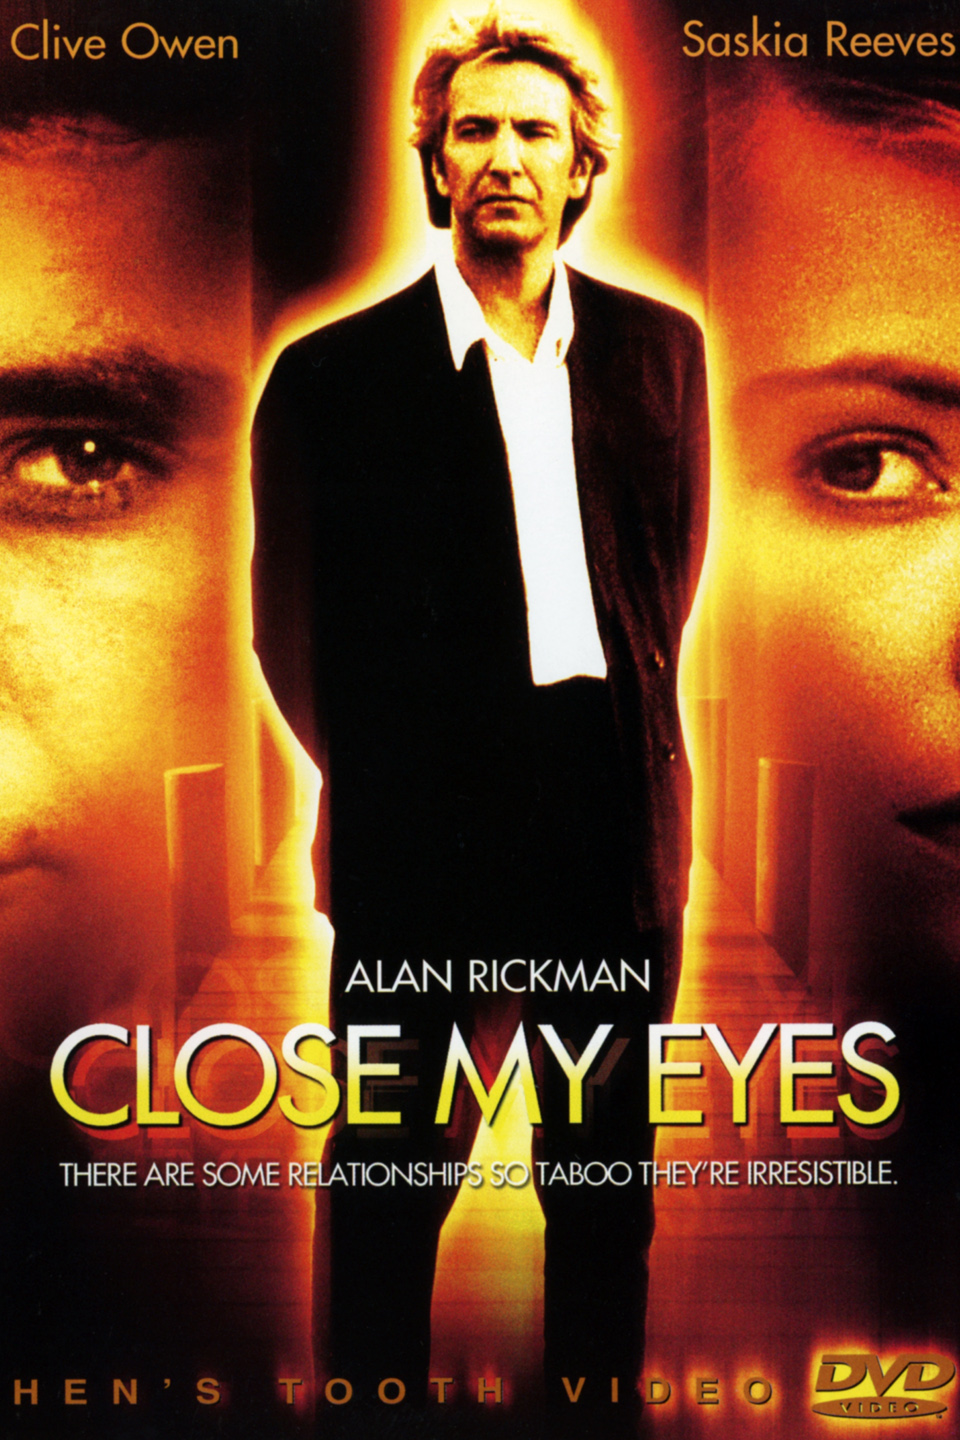 Close My Eyes (film) wwwgstaticcomtvthumbdvdboxart13131p13131d